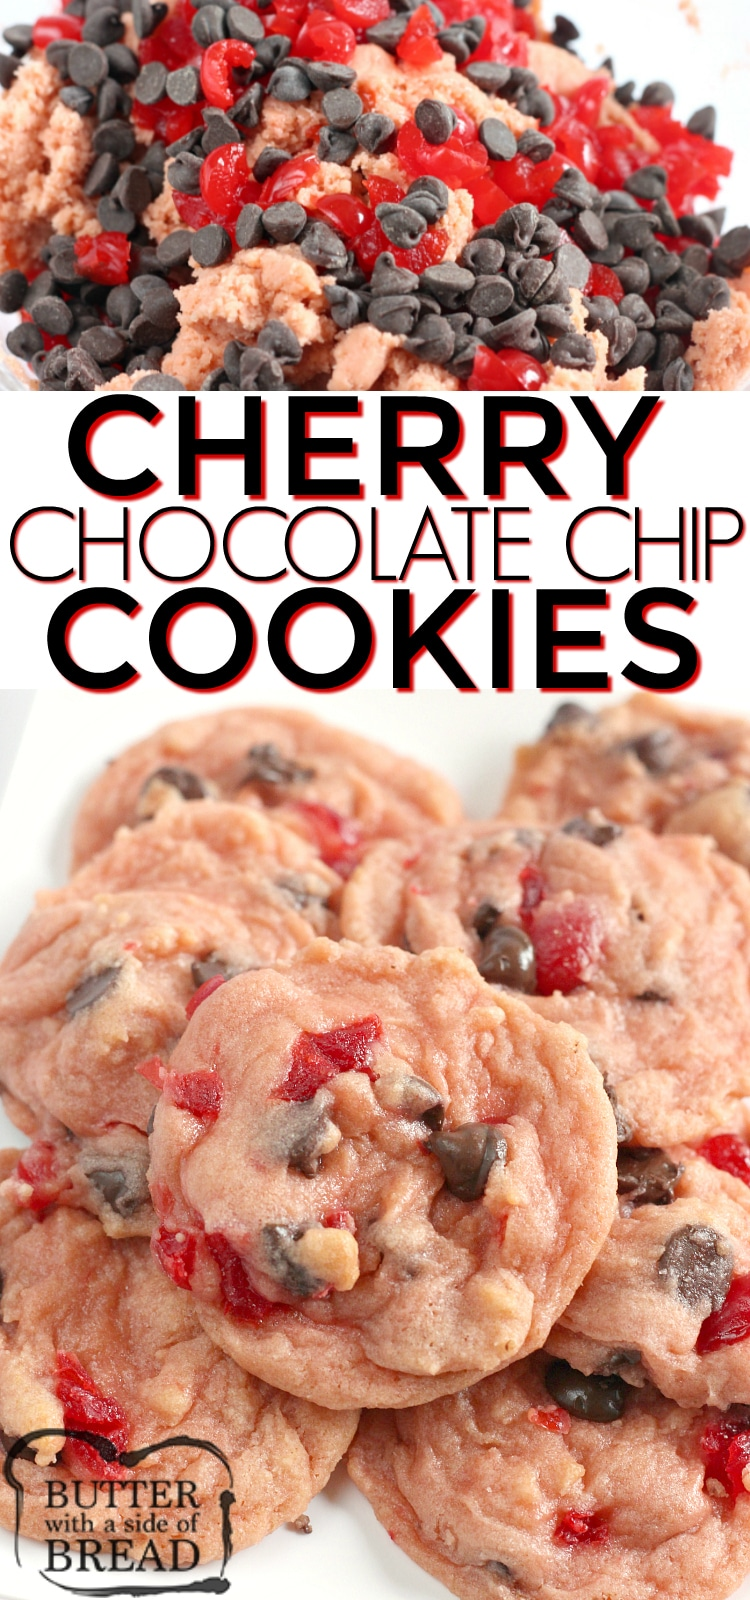 Cherry Chocolate Chip Cookies are soft, chewy and full of cherries and chocolate chips. This chocolate chip cookie recipe is a delicious twist on a classic favorite!